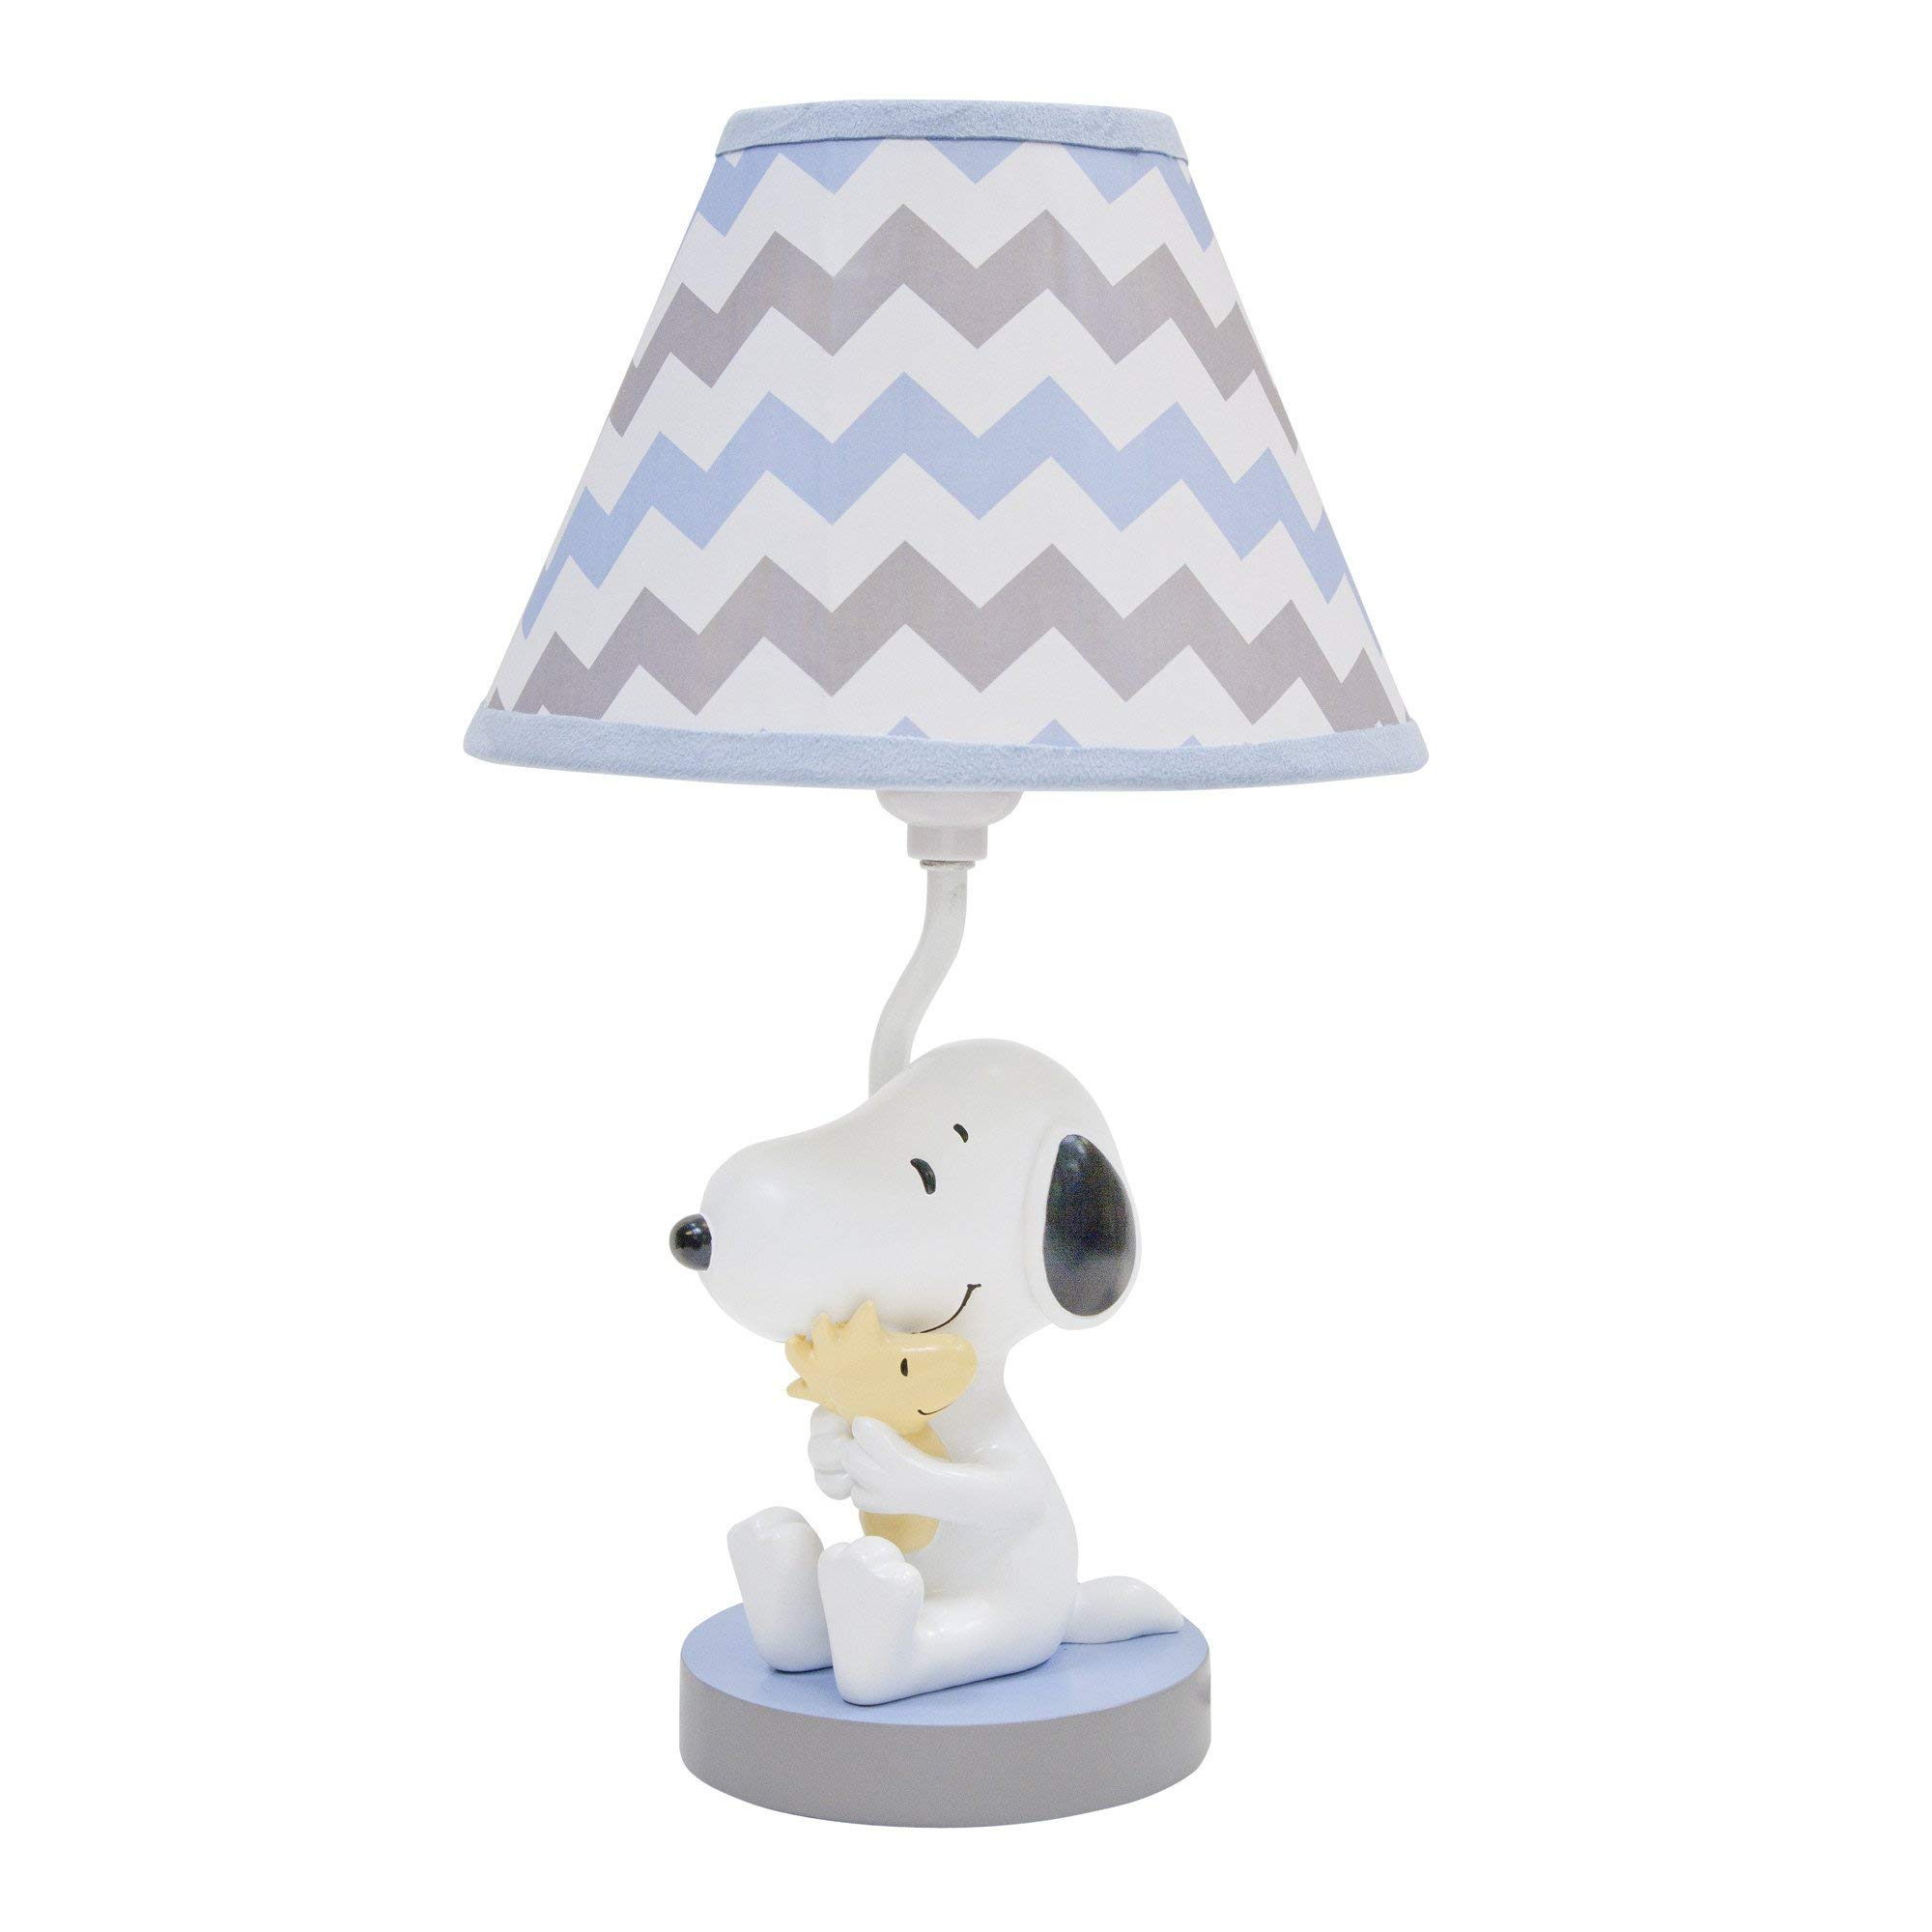 Lambs & Ivy My Little Snoopy Lamp with Shade & Bulb - Blue, Gray, White, Snoopy by Lambs & Ivy